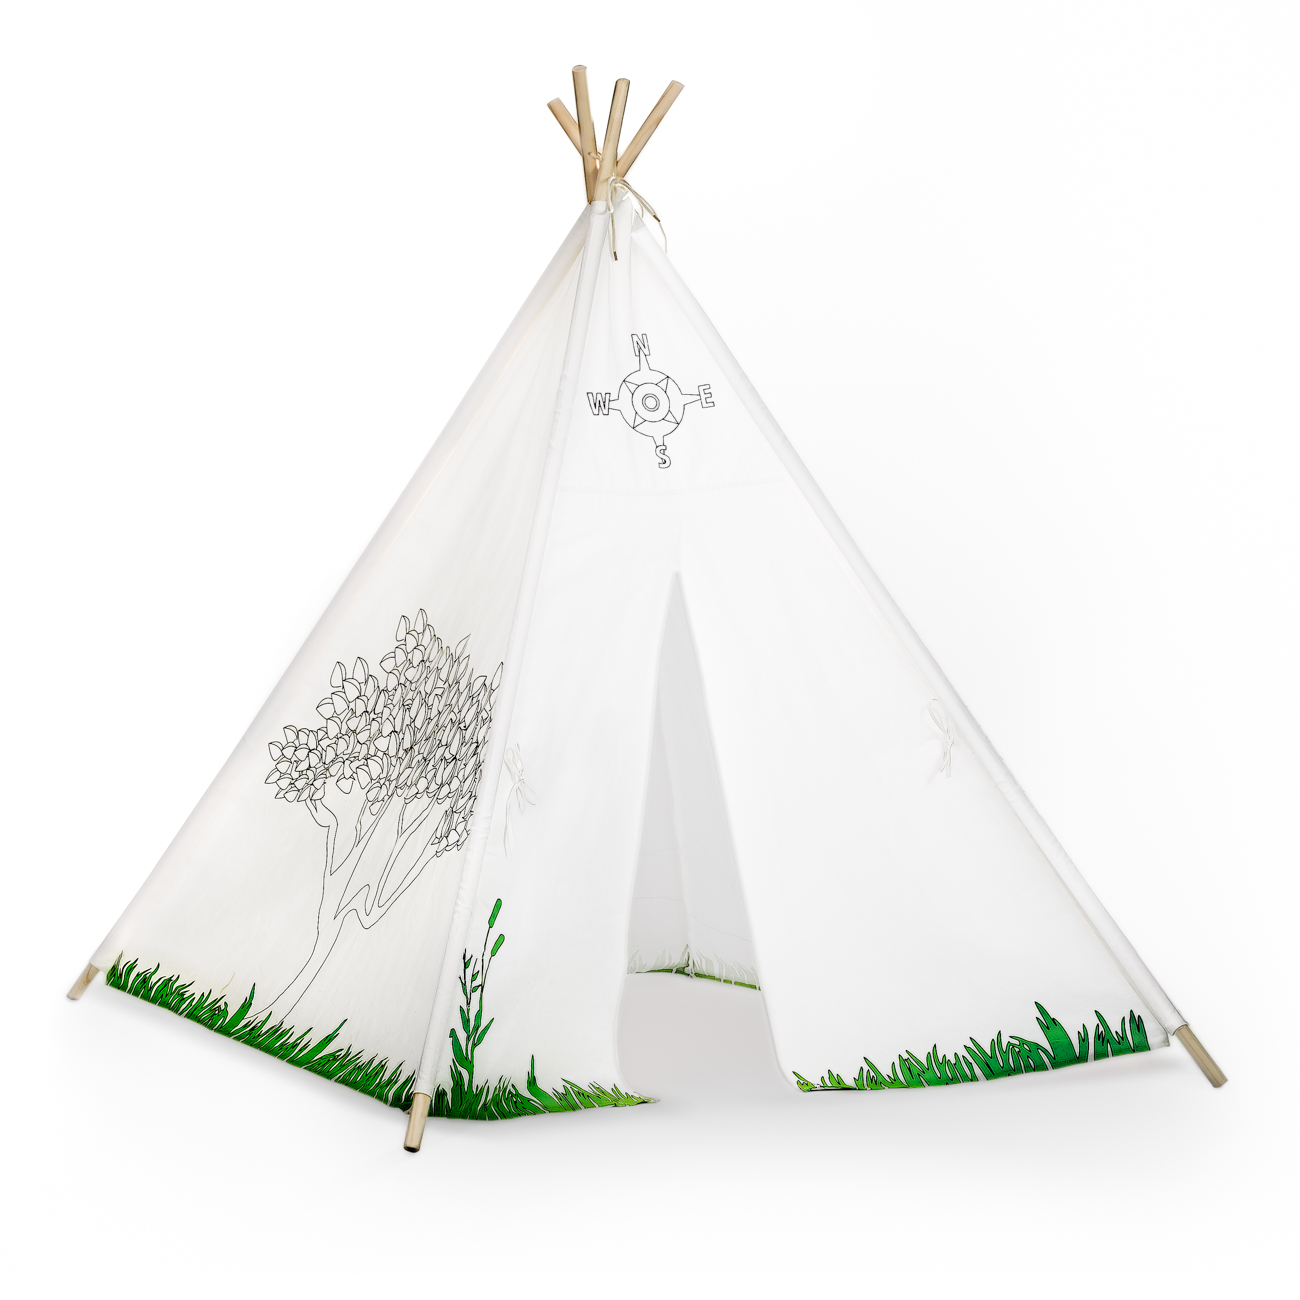 cheaper 63a95 c74fe Kids TeePee Play Tent with Coloring Pattern - Prosumer's Choice